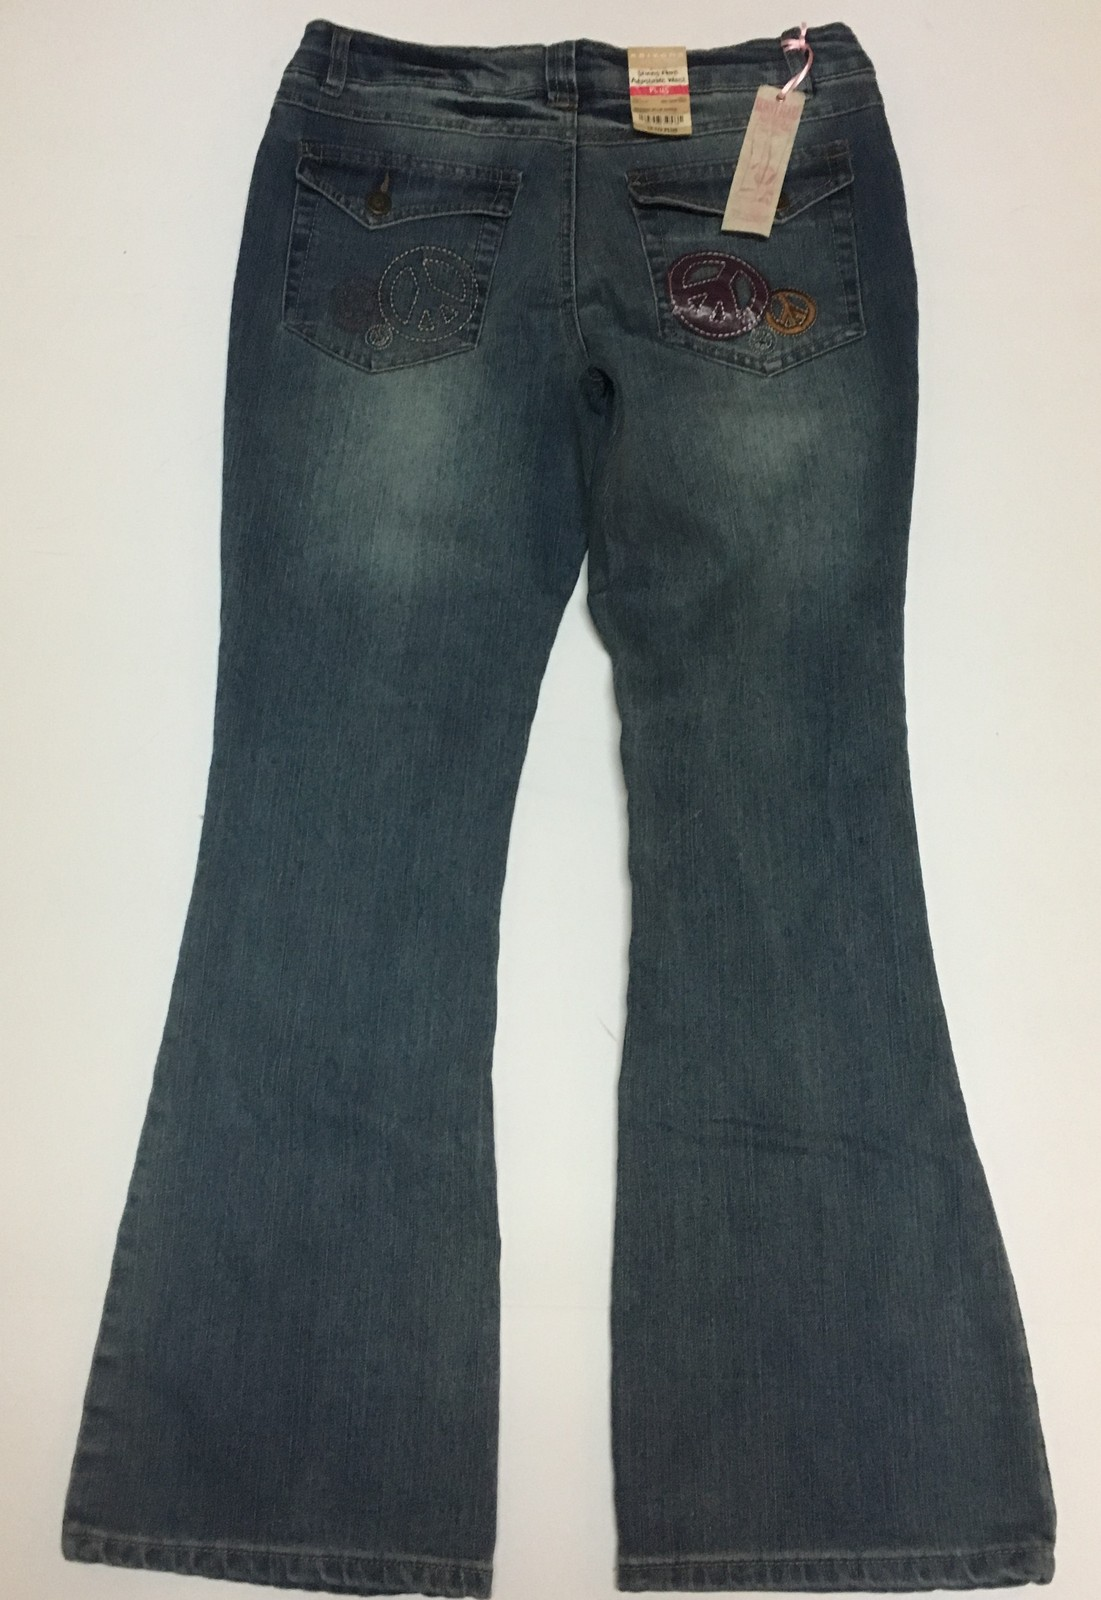 Girl's Arizona Blue Jeans Sz 12.5 Plus Adjustable Waist Skinny Flare